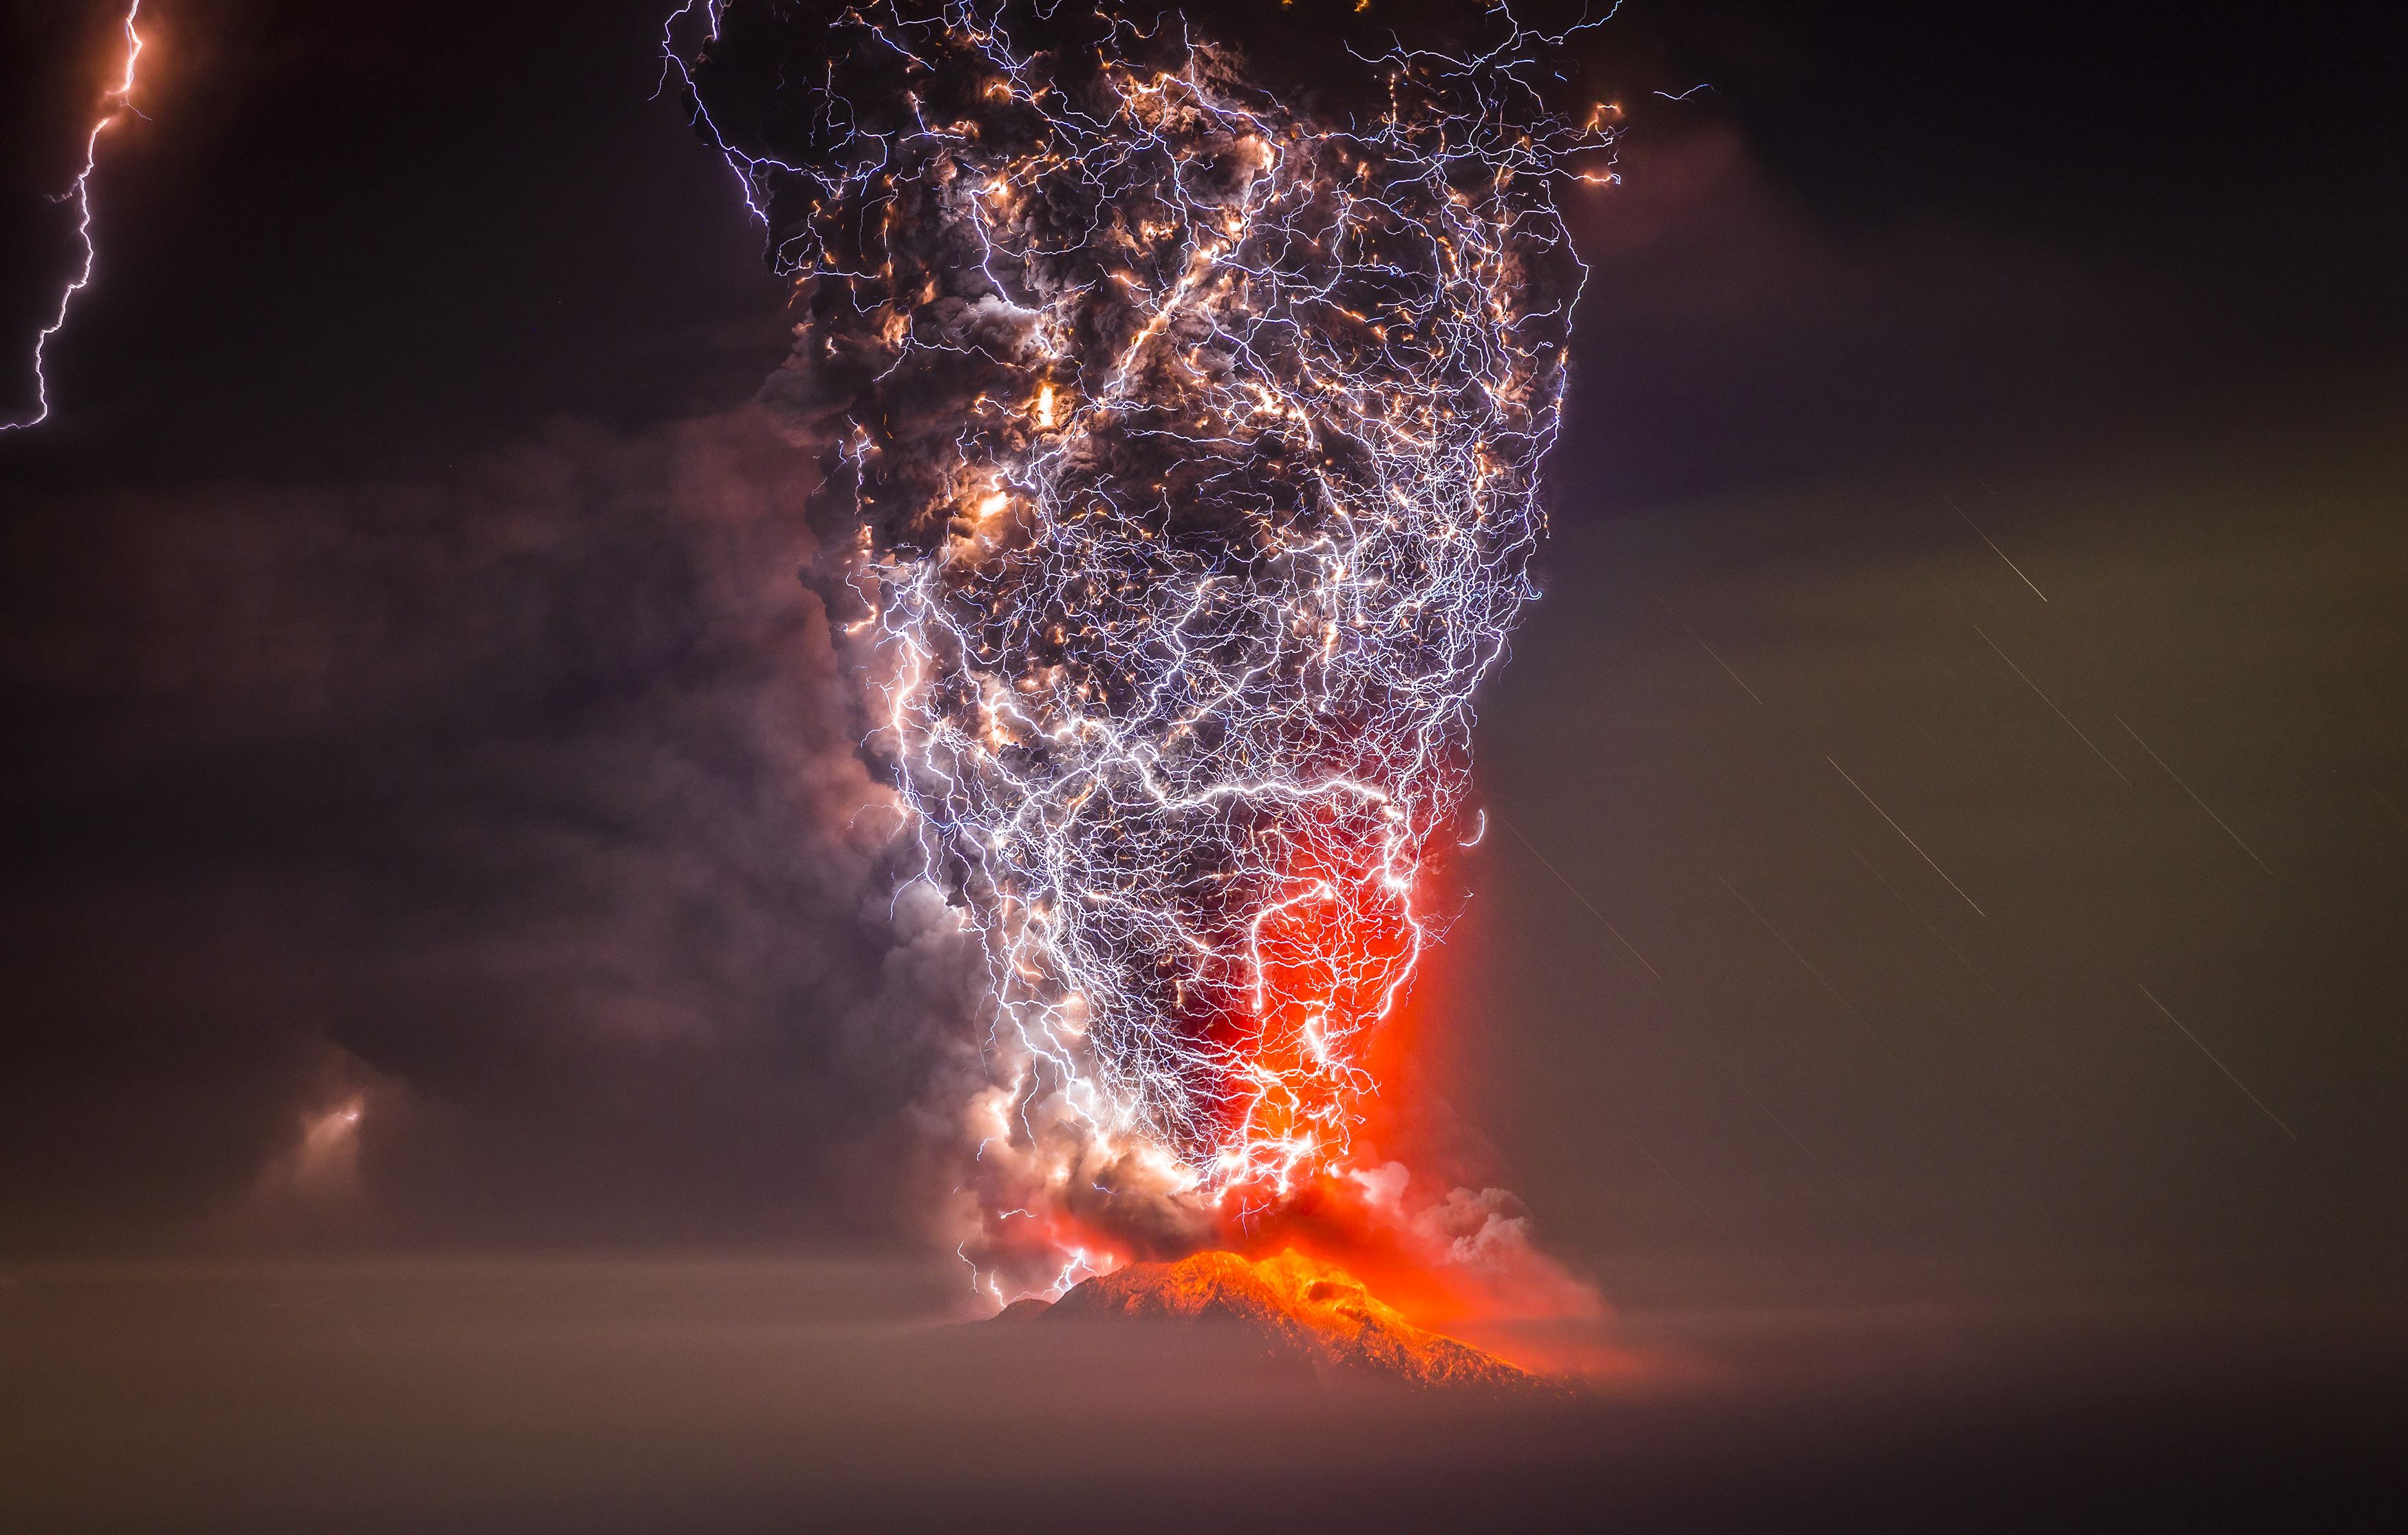 Lightning Engulfs A Volcanic Eruption In Chile Natureismetal - 17 incredible photos of volcanic lightning